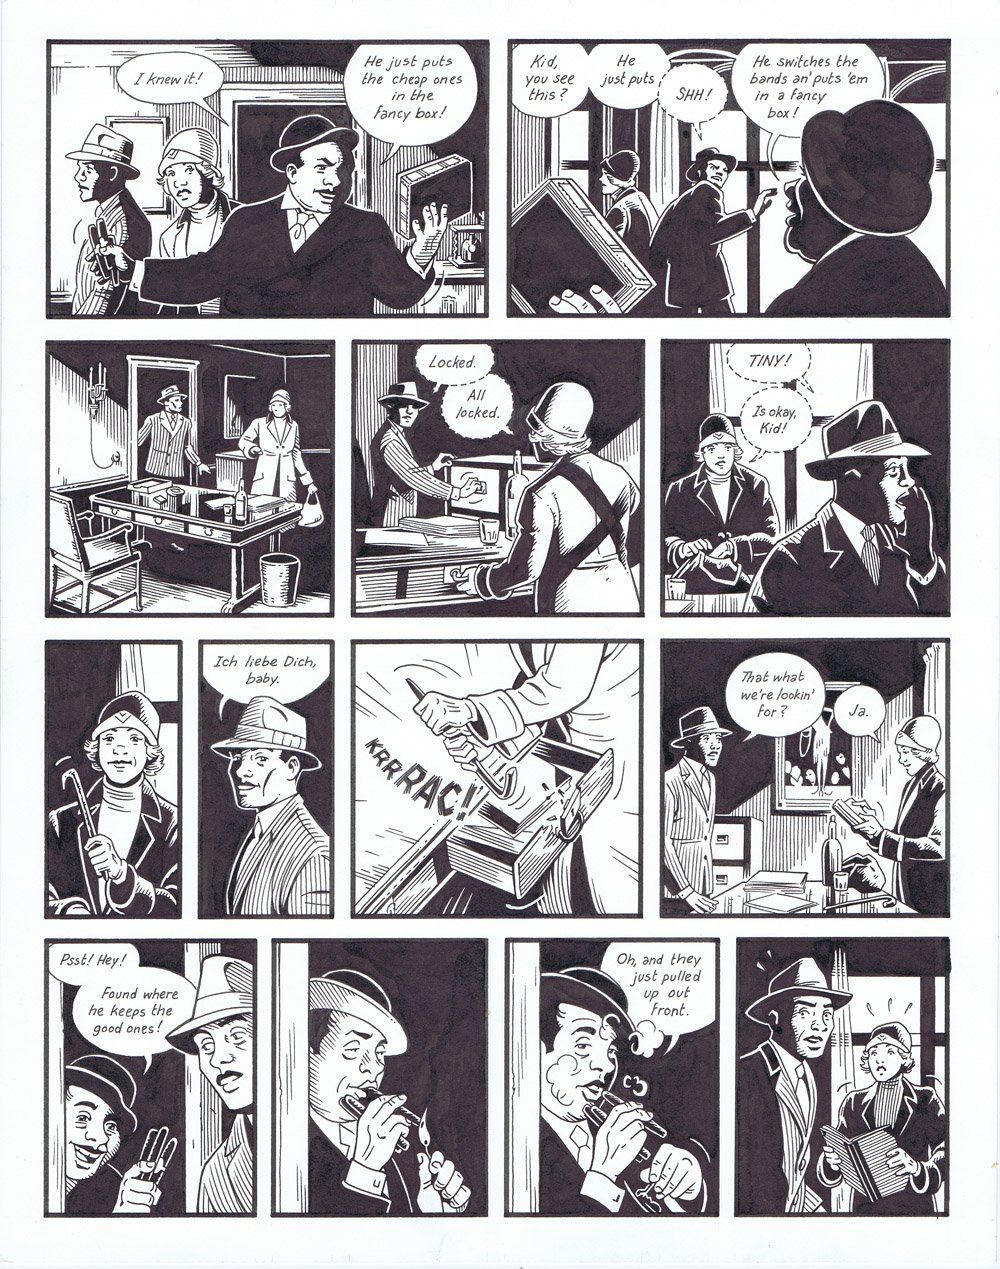 Berlin: Book 2 - page 197